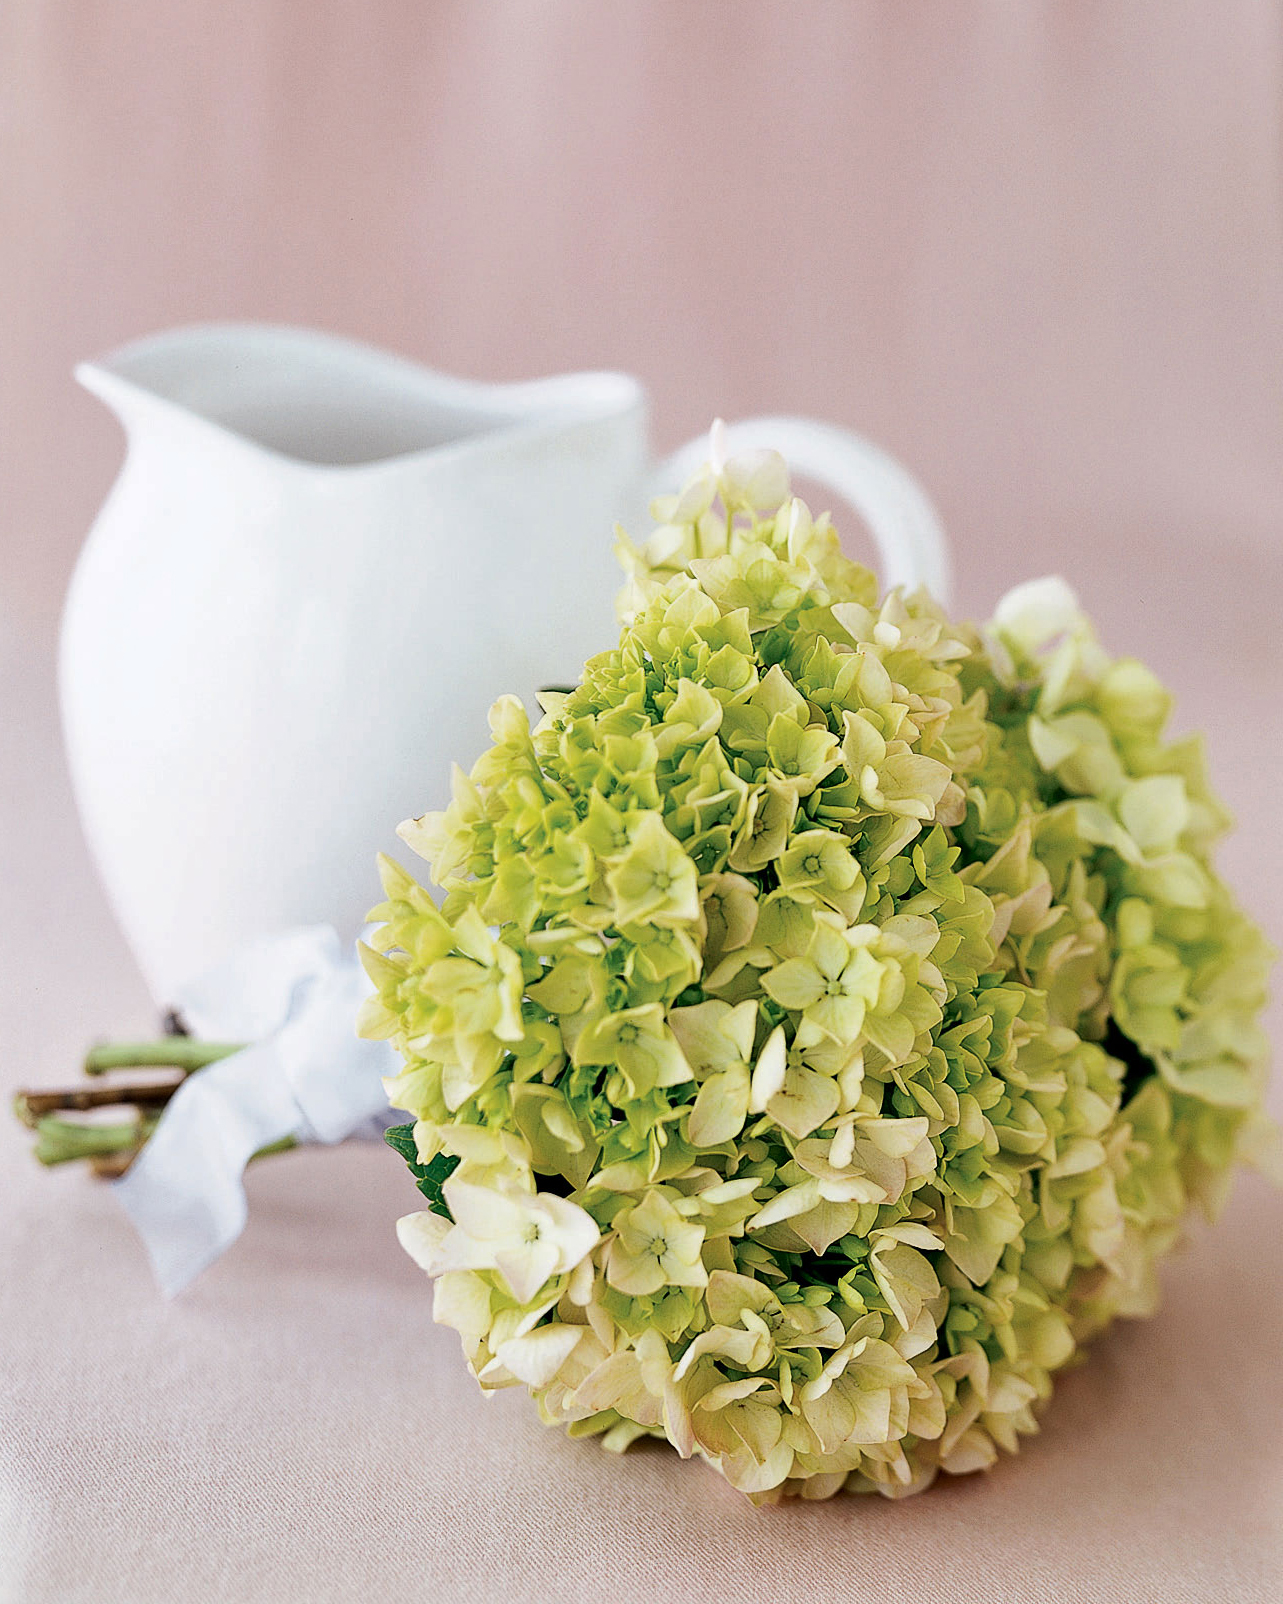 Create a Bouquet of Hydrangeas